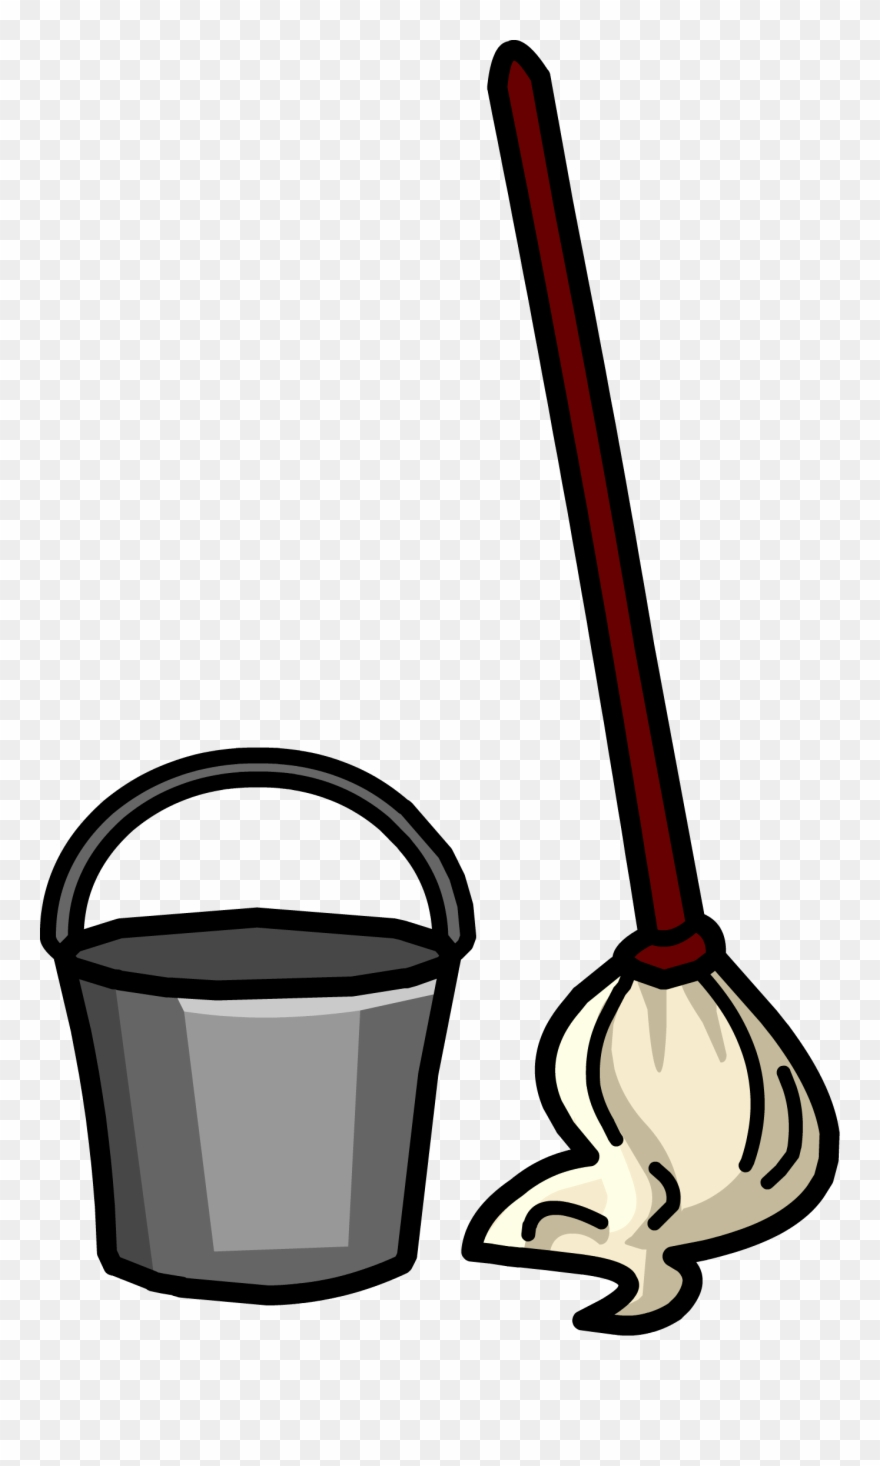 royalty free Free clip art bucket. Broom and mop clipart